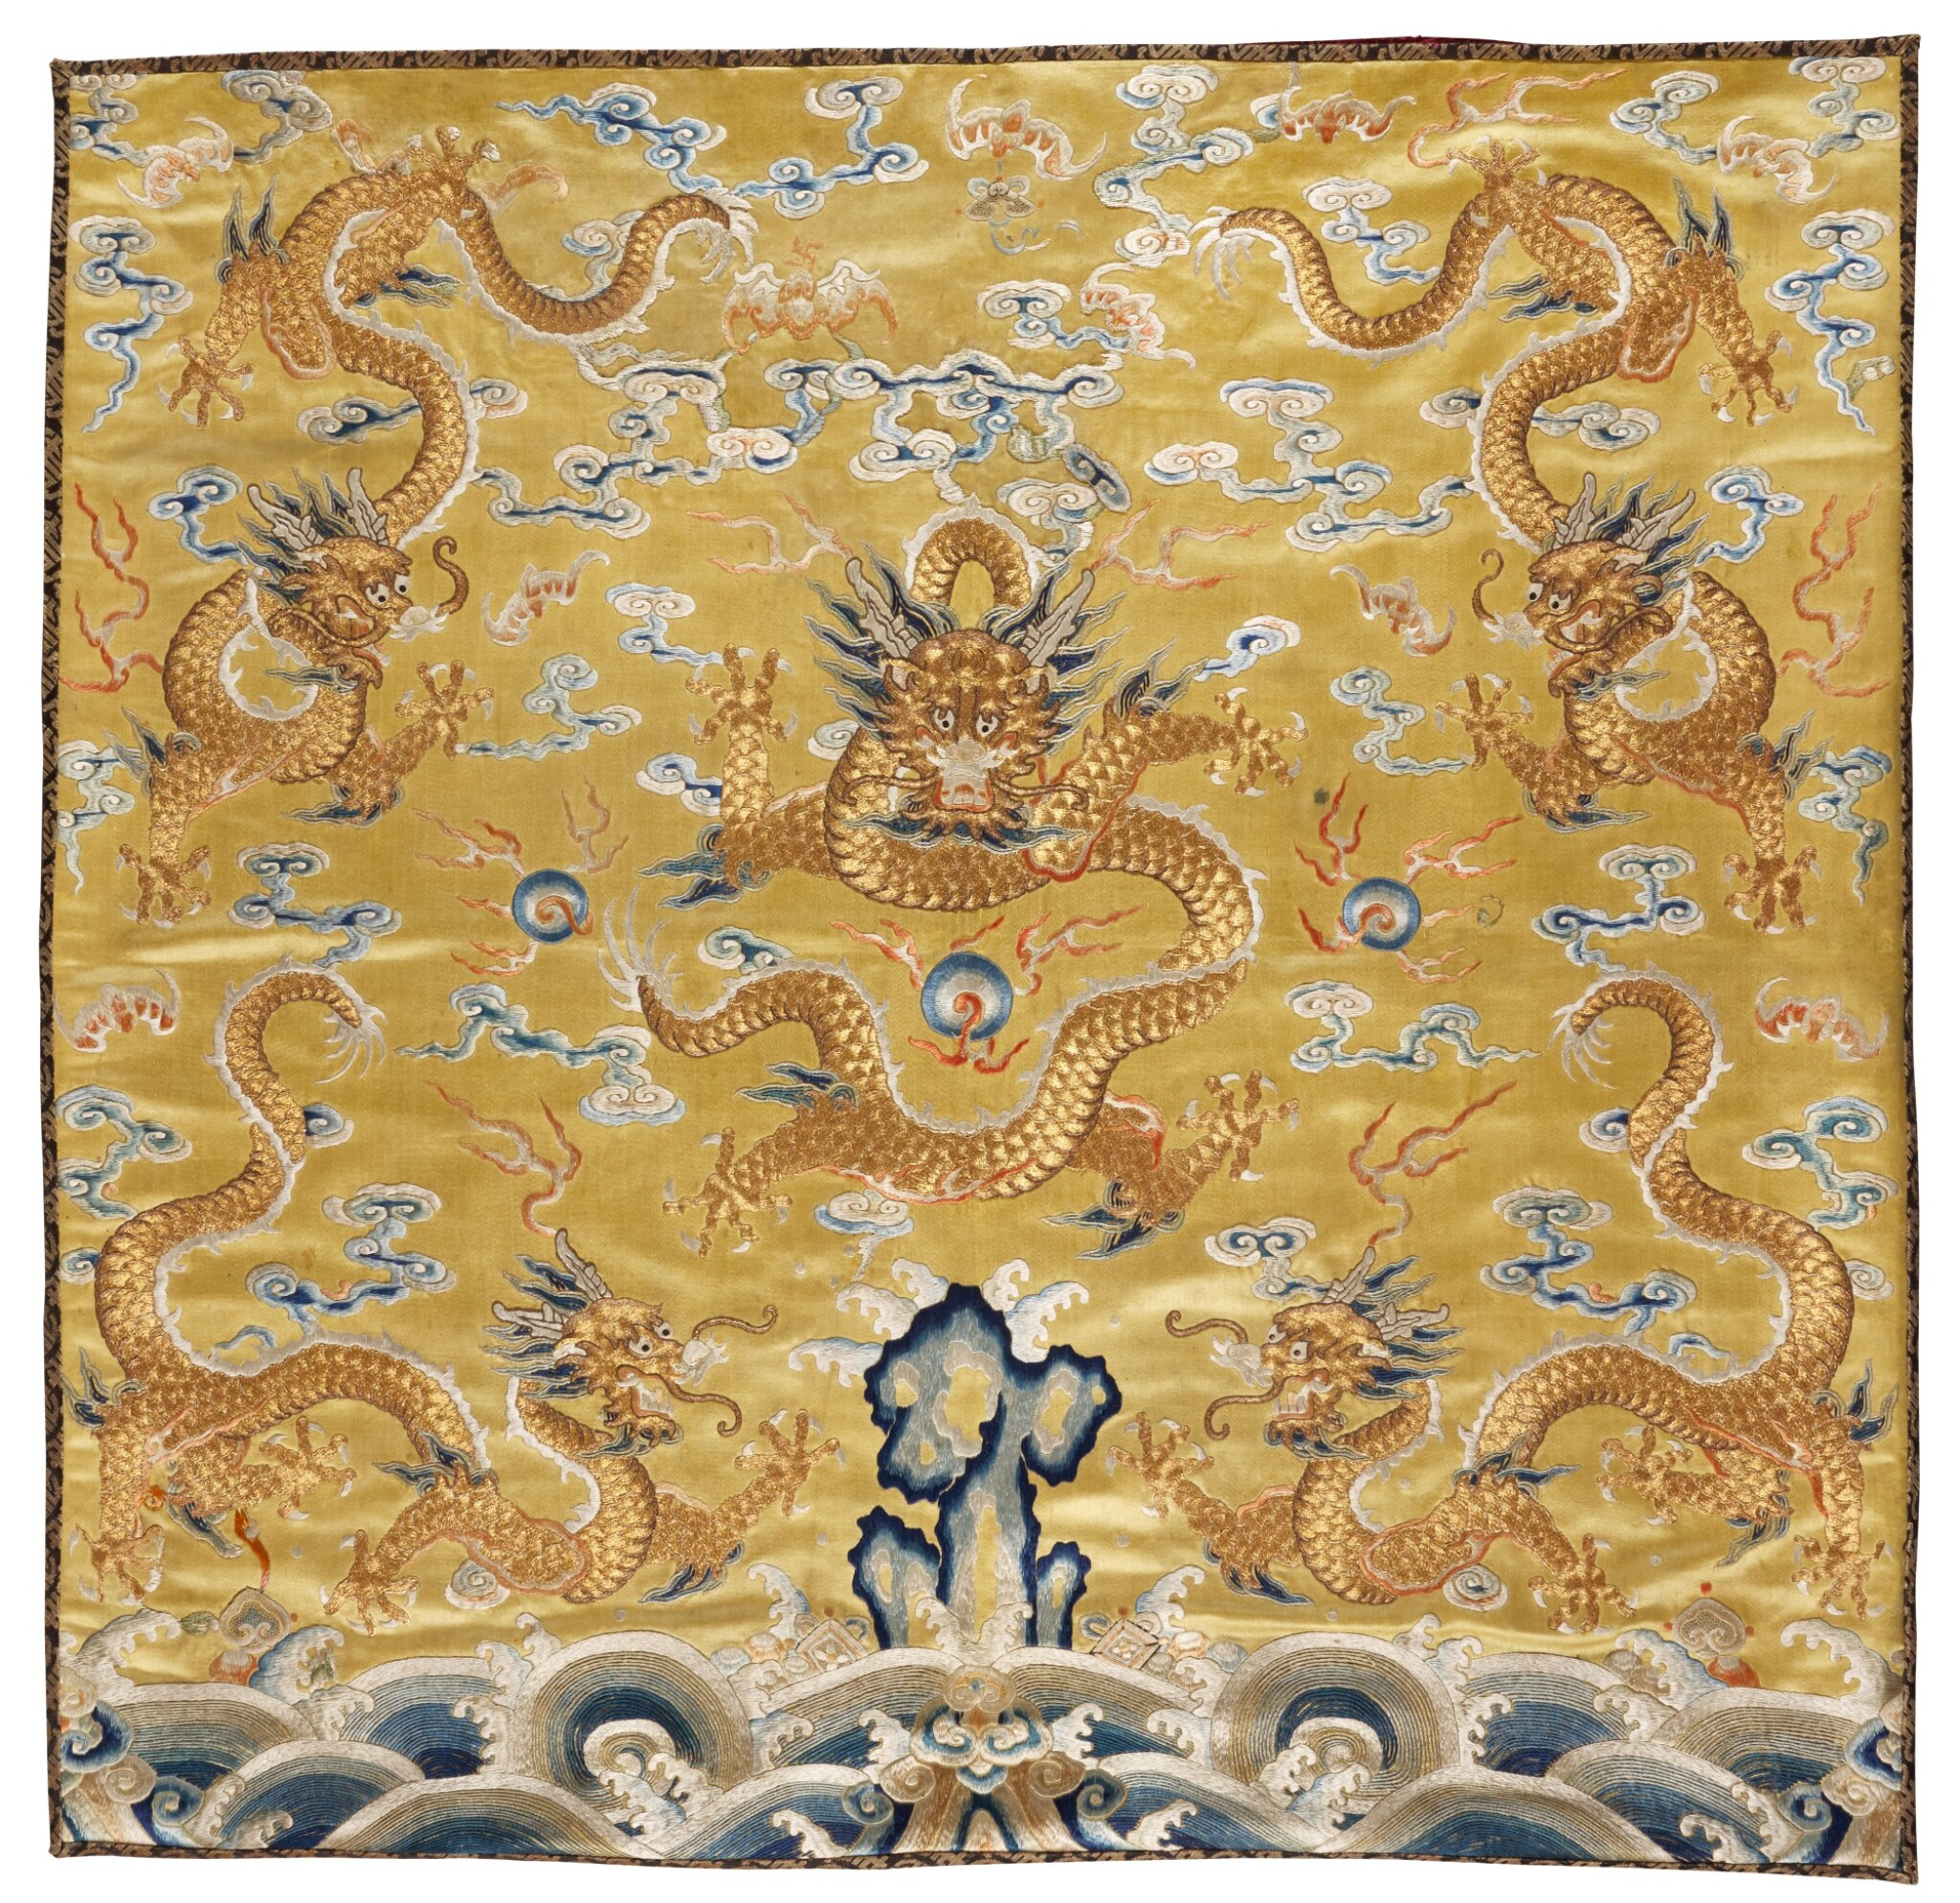 View full screen - View 1 of Lot 29. AN IMPERIAL YELLOW-GROUND EMBROIDERED SILK CUSHION COVER, QING DYNASTY, QIANLONG PERIOD  清乾隆 黃地鍛綉五龍趕珠紋墊面.